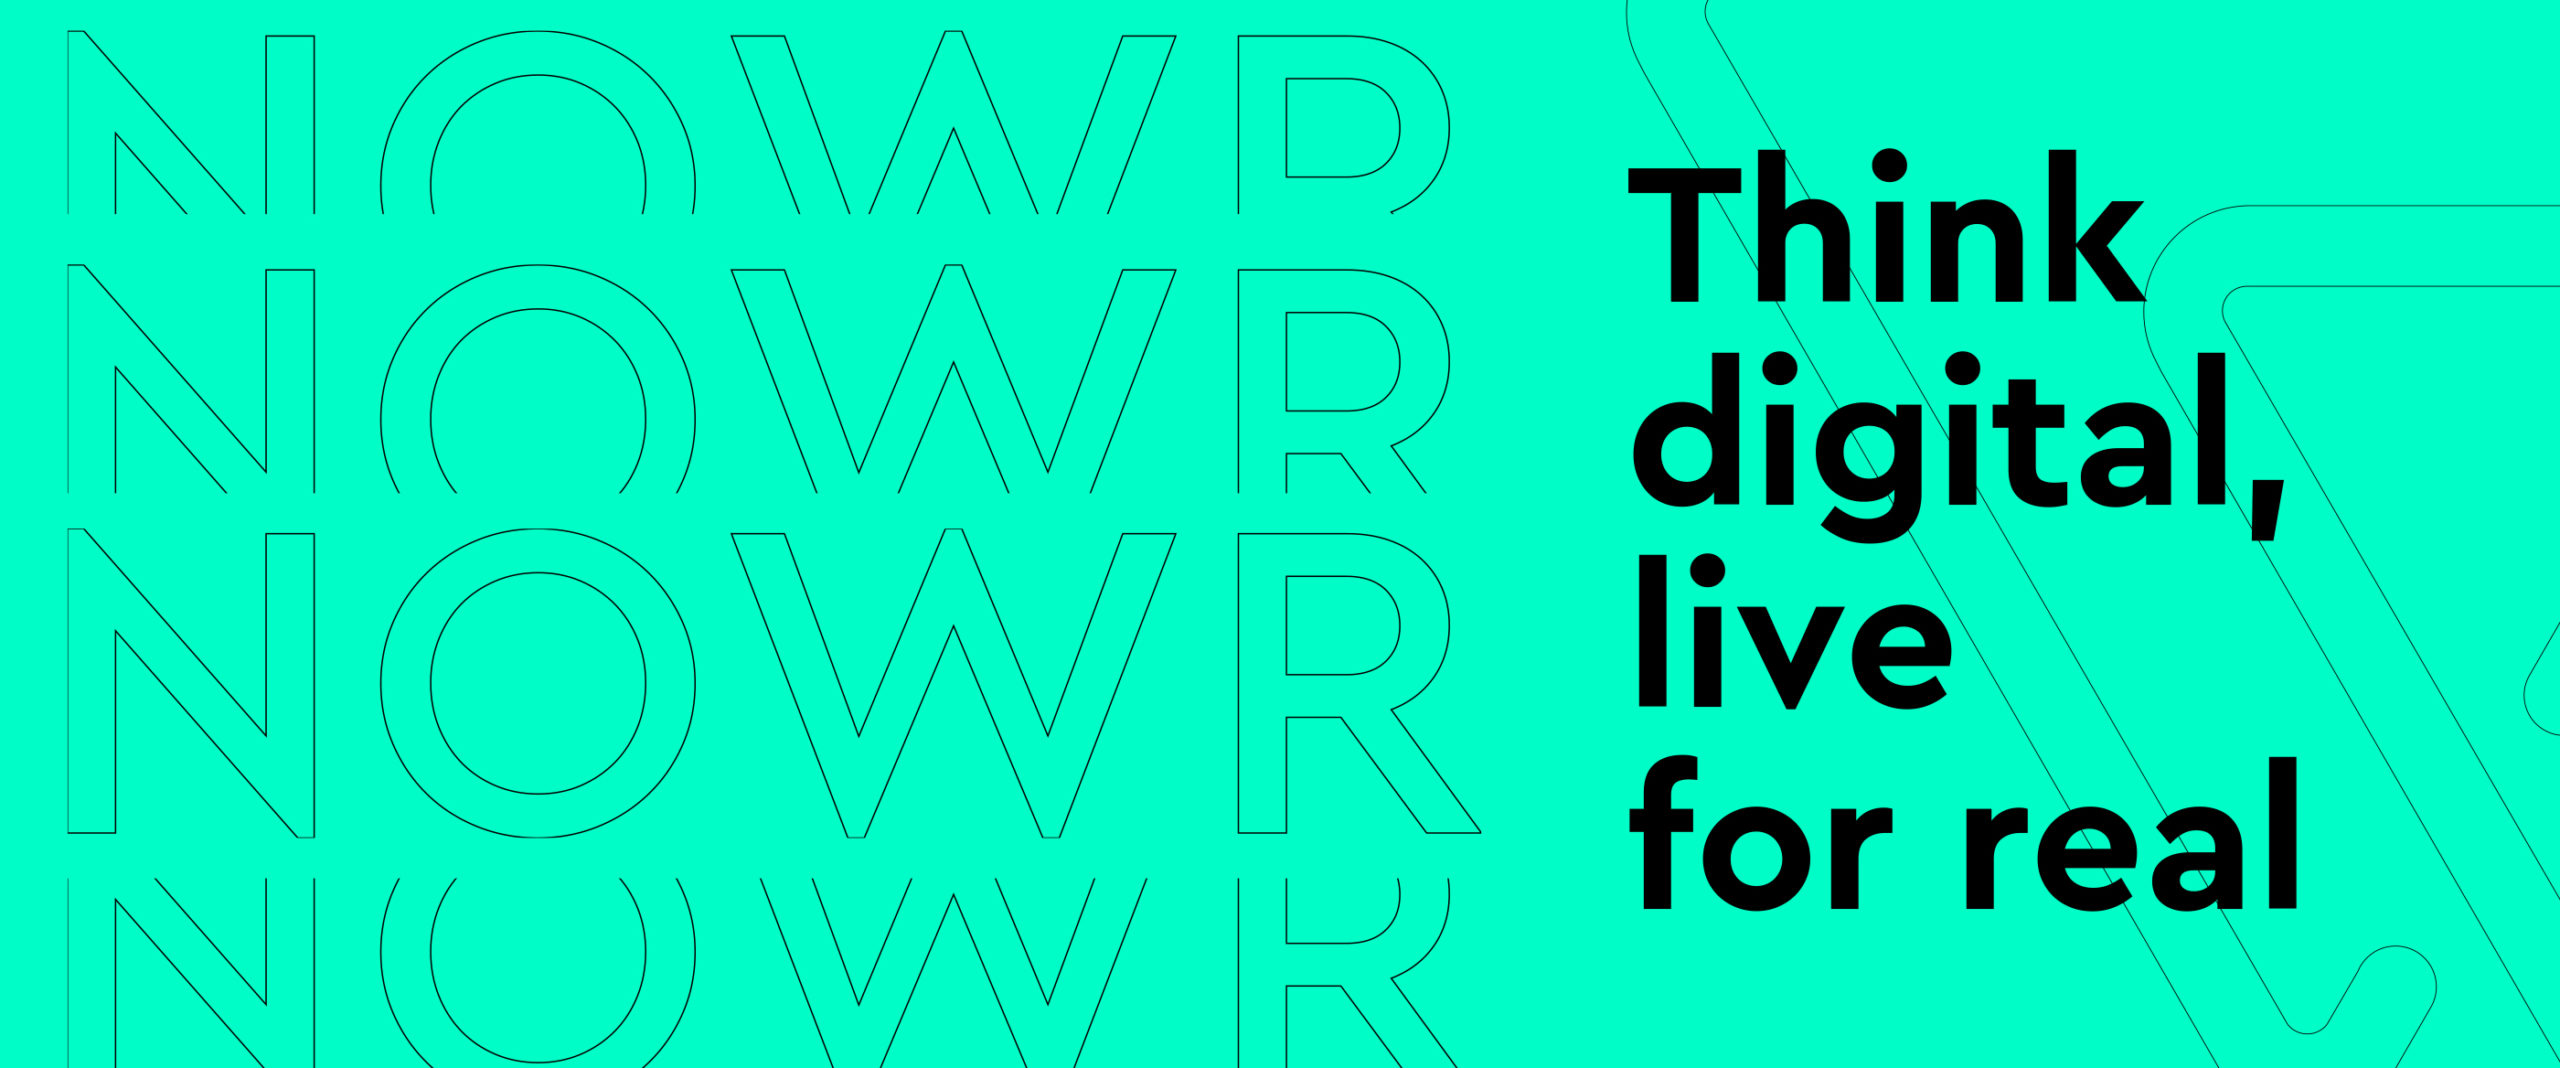 Think digital, live for real with NOWR